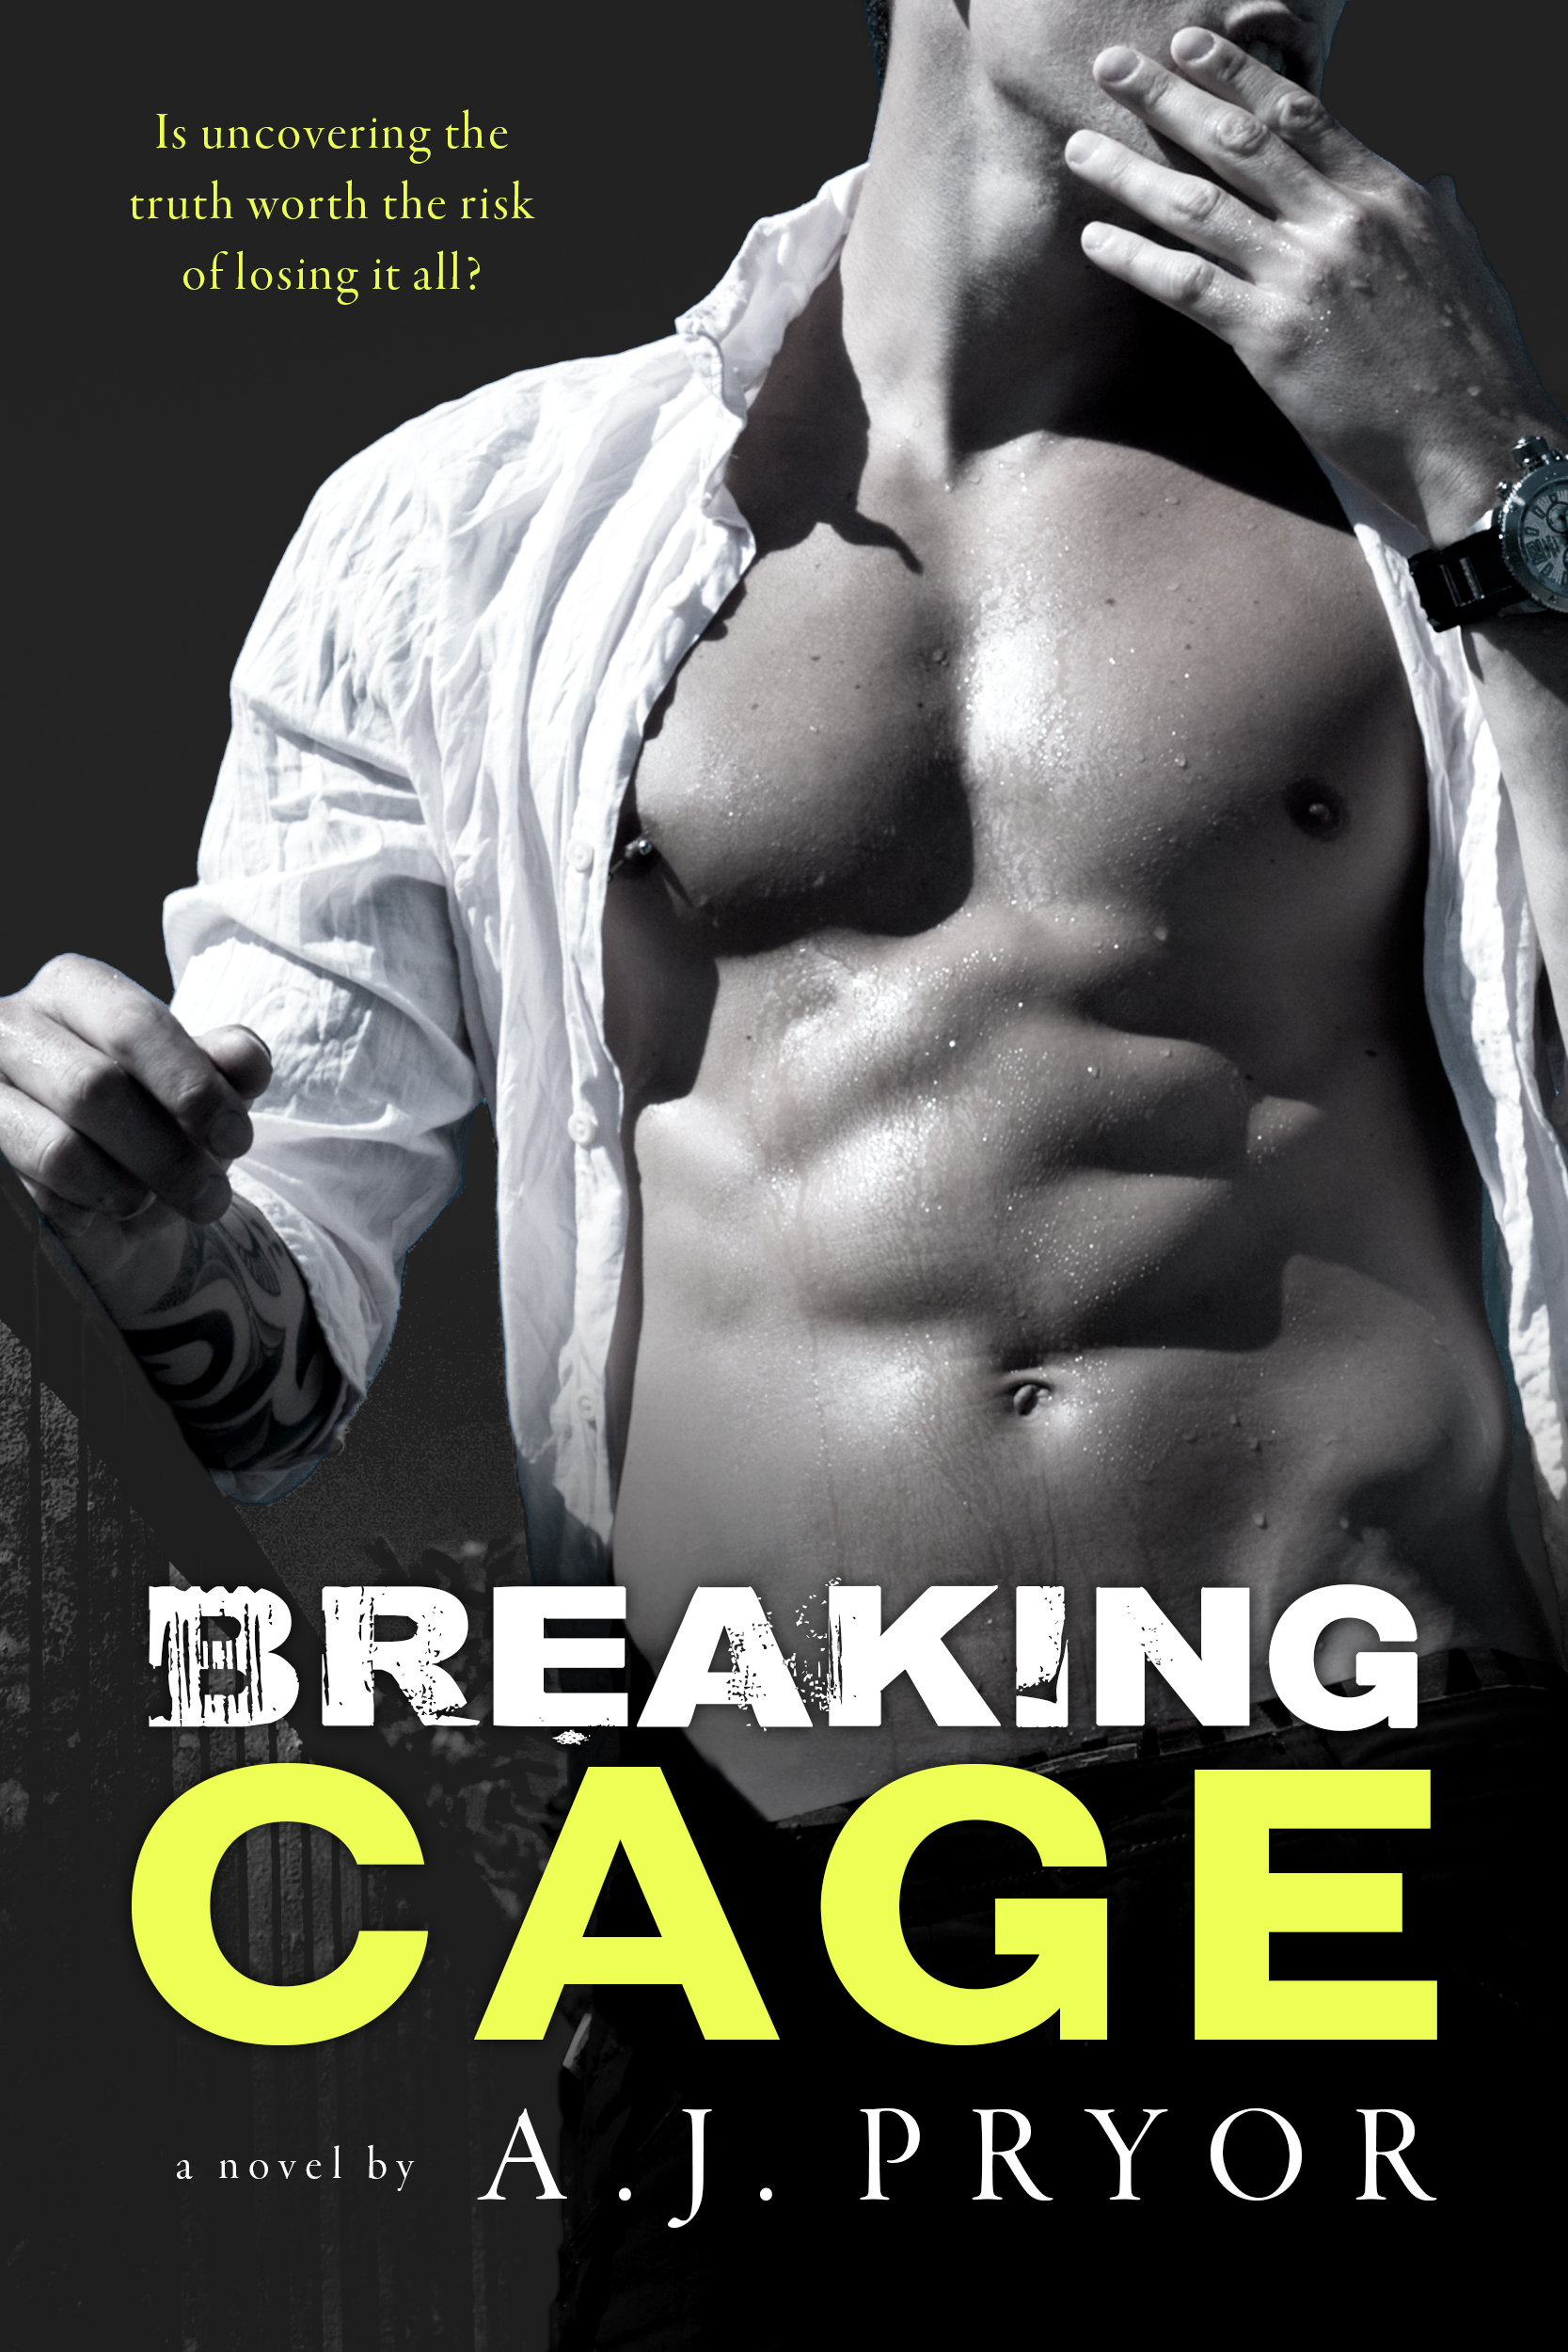 Breaking Cage